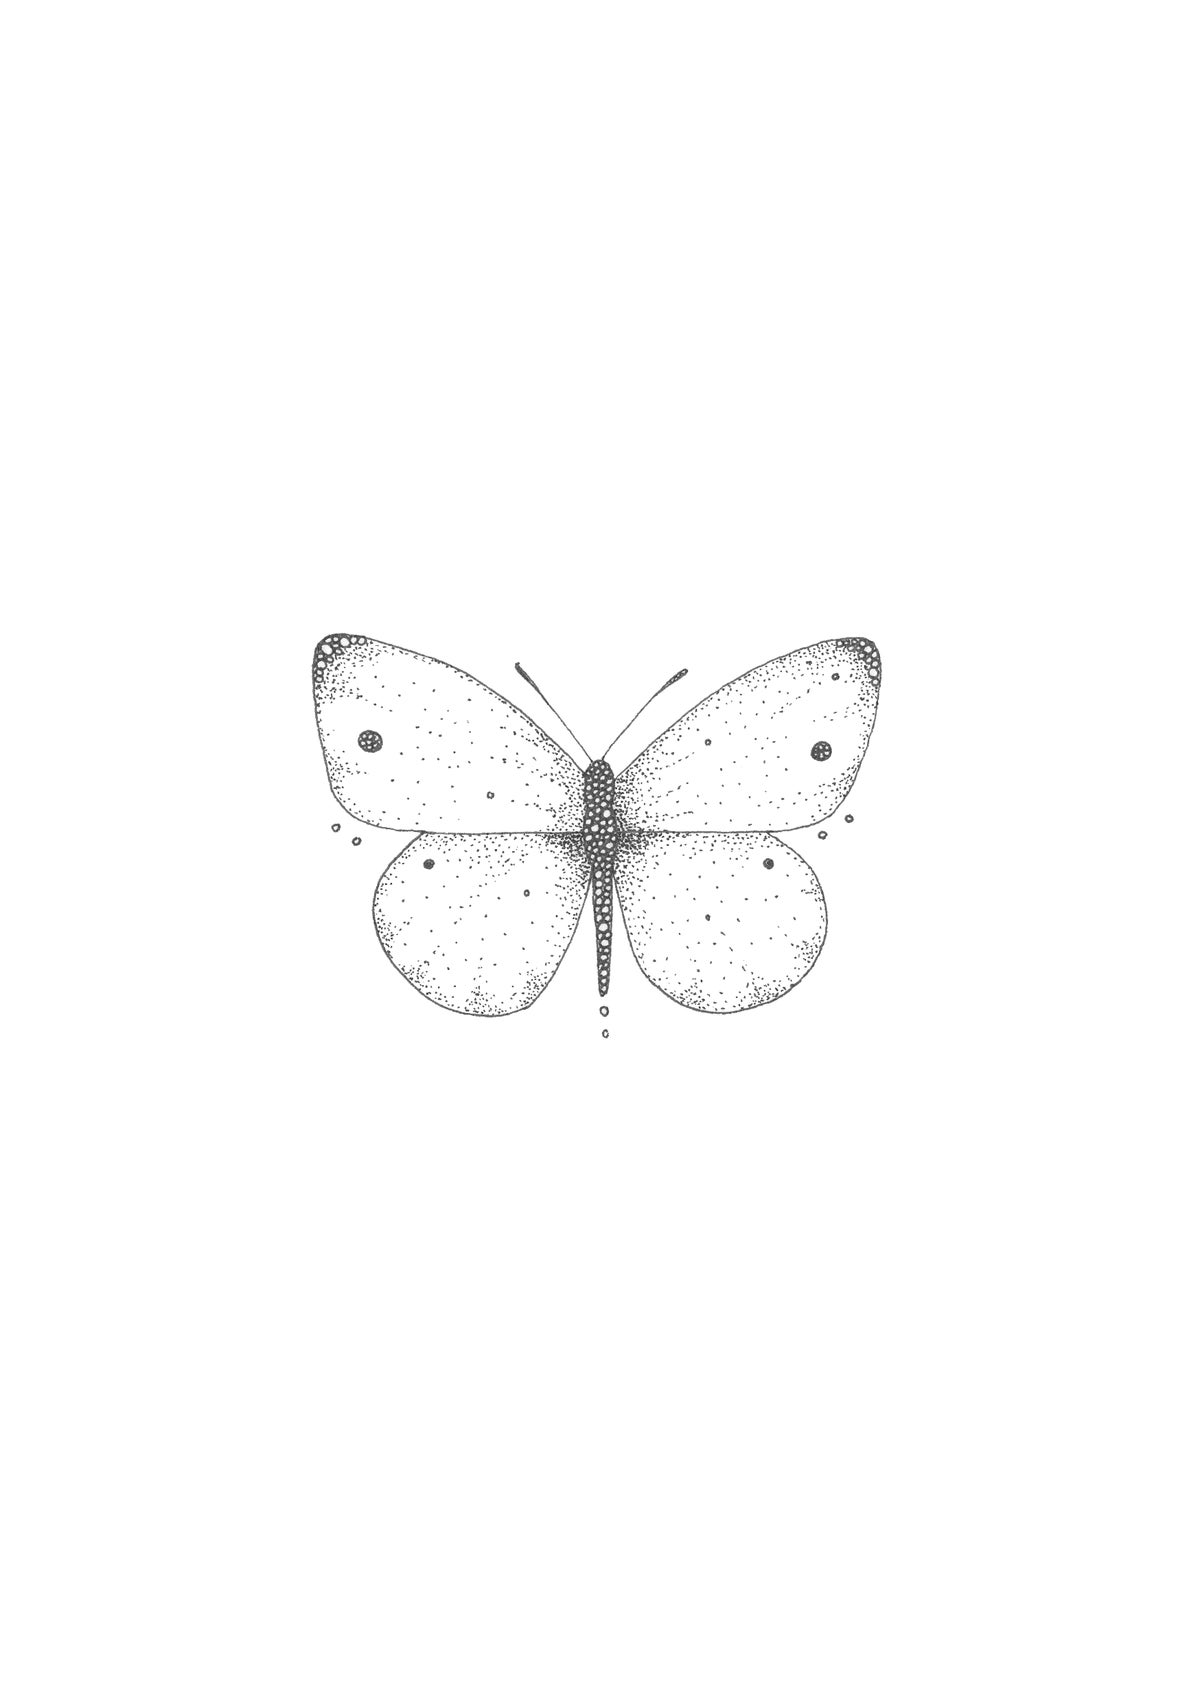 Image of Male Cabbage White